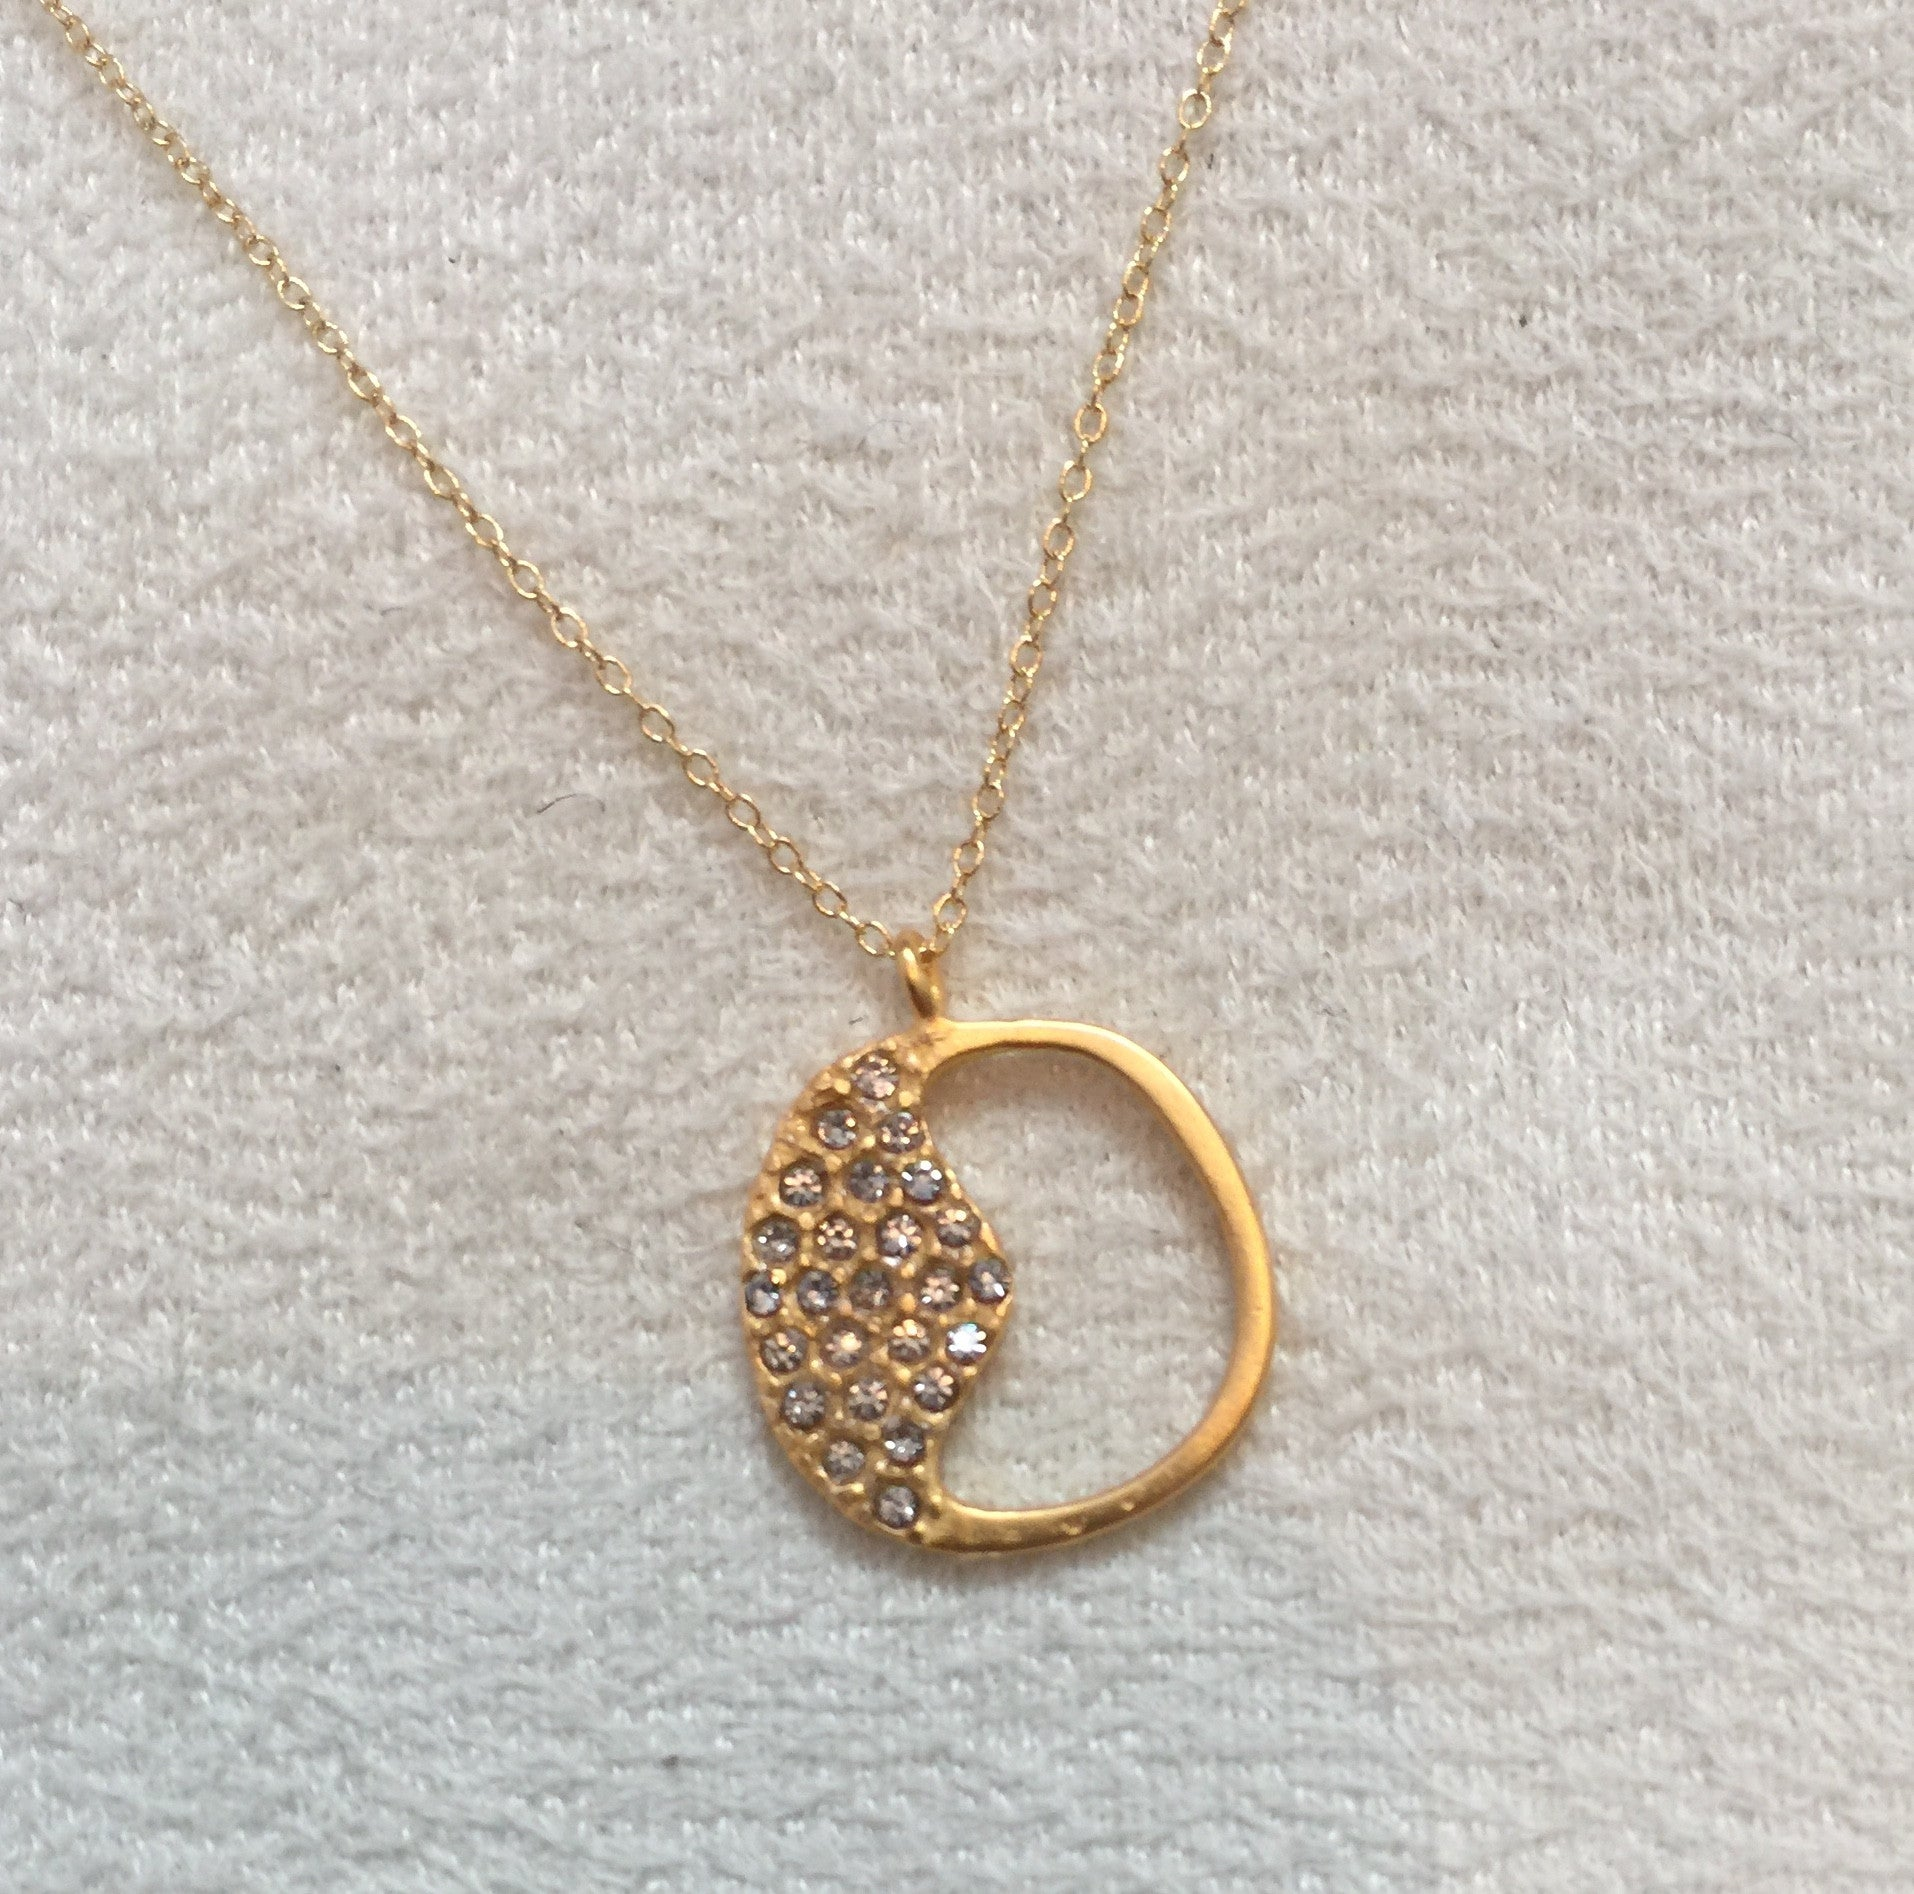 18K Gold Plated Ying Yang  Necklace, Black diamond - Rebel Designs - Necklace - TOPGEARNY